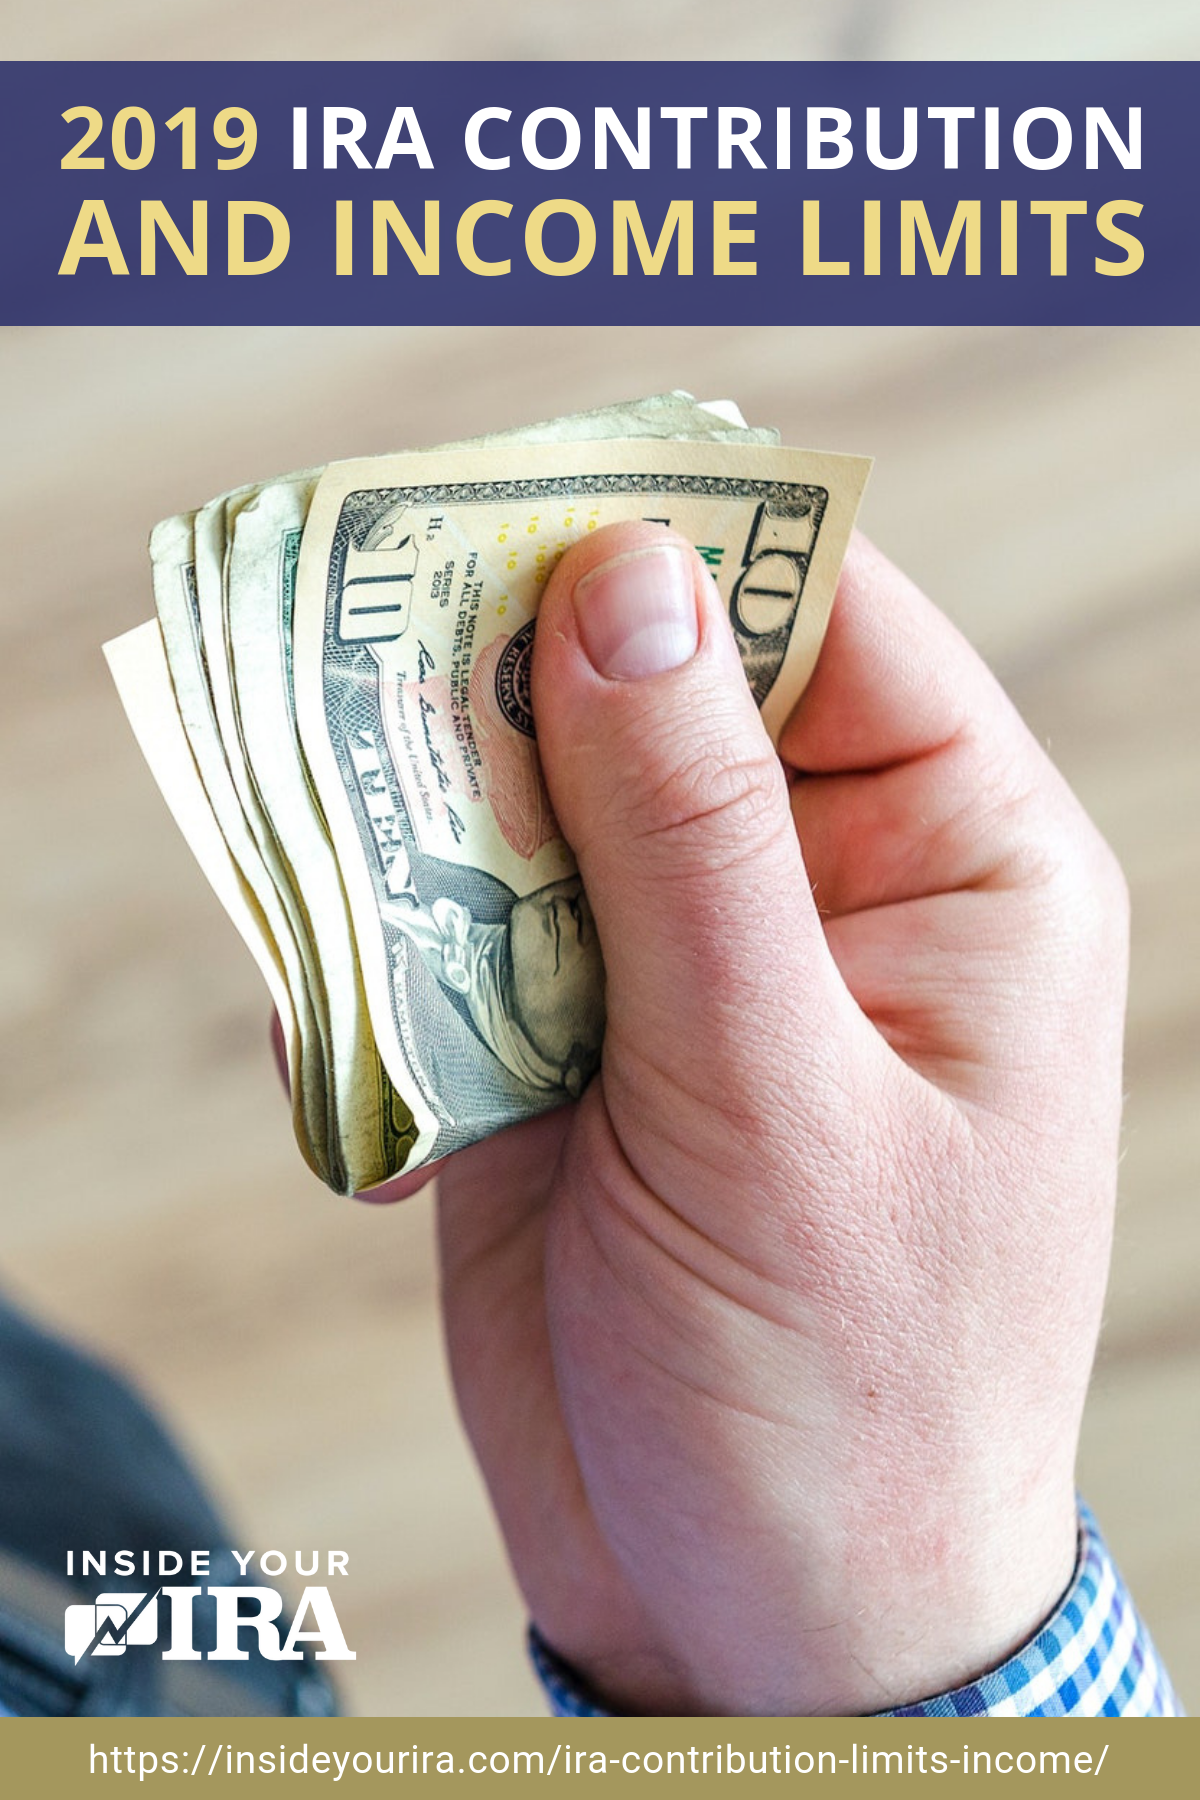 2019 IRA Contribution and Income Limits | Inside Your IRA https://insideyourira.com/ira-contribution-limits-income/